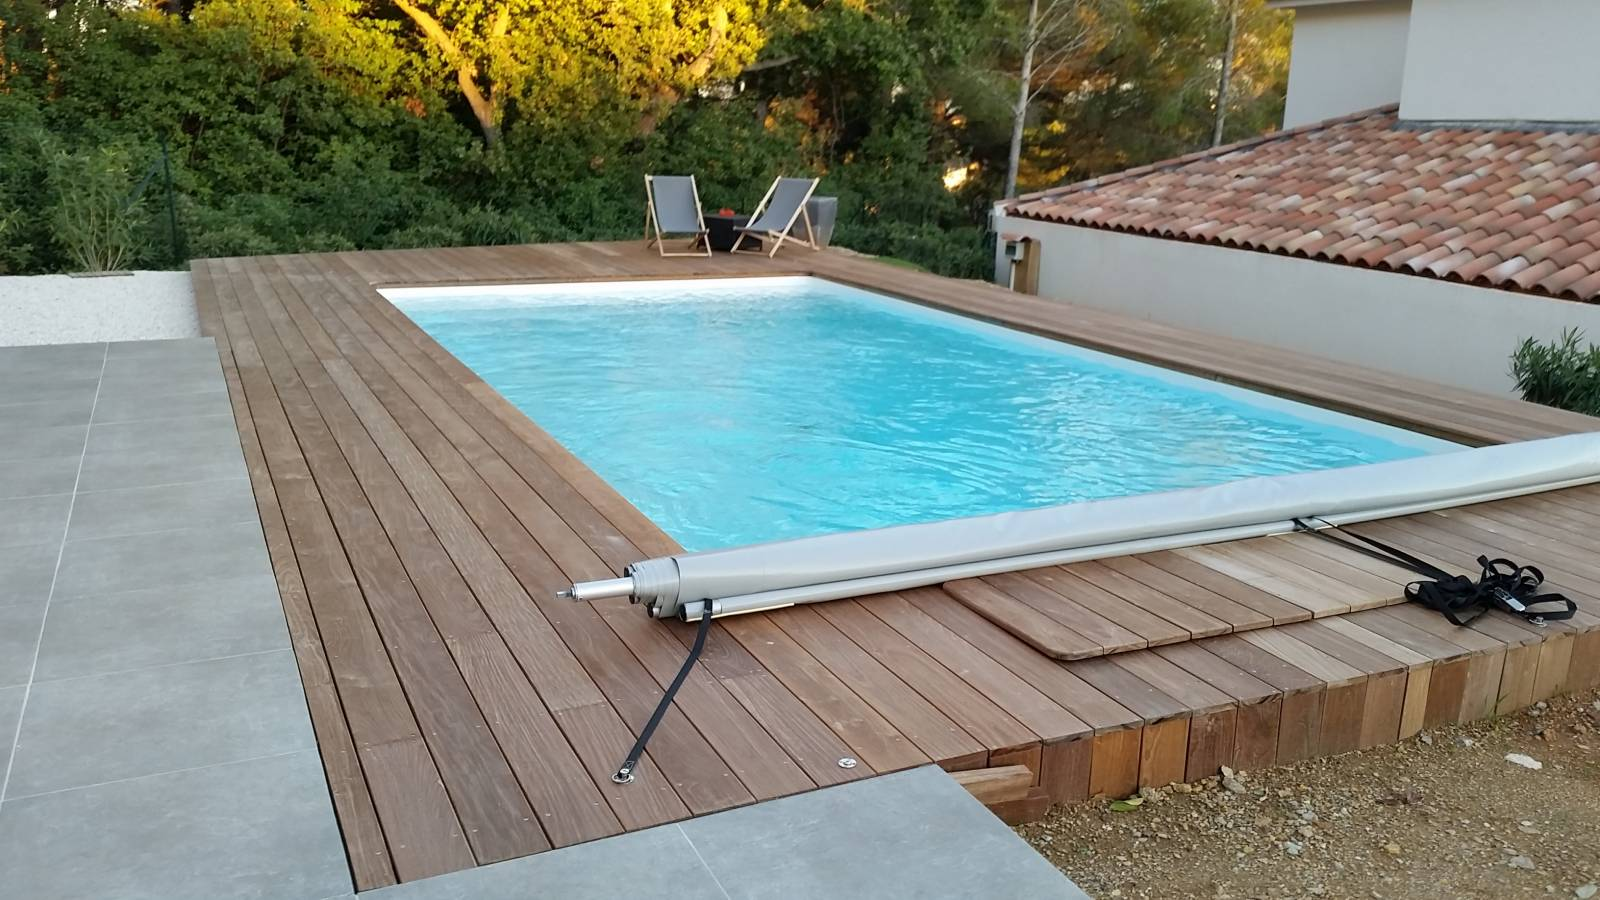 R alisation d 39 une piscine 8x4 m blanc desjoyaux six for Piscine 8x4